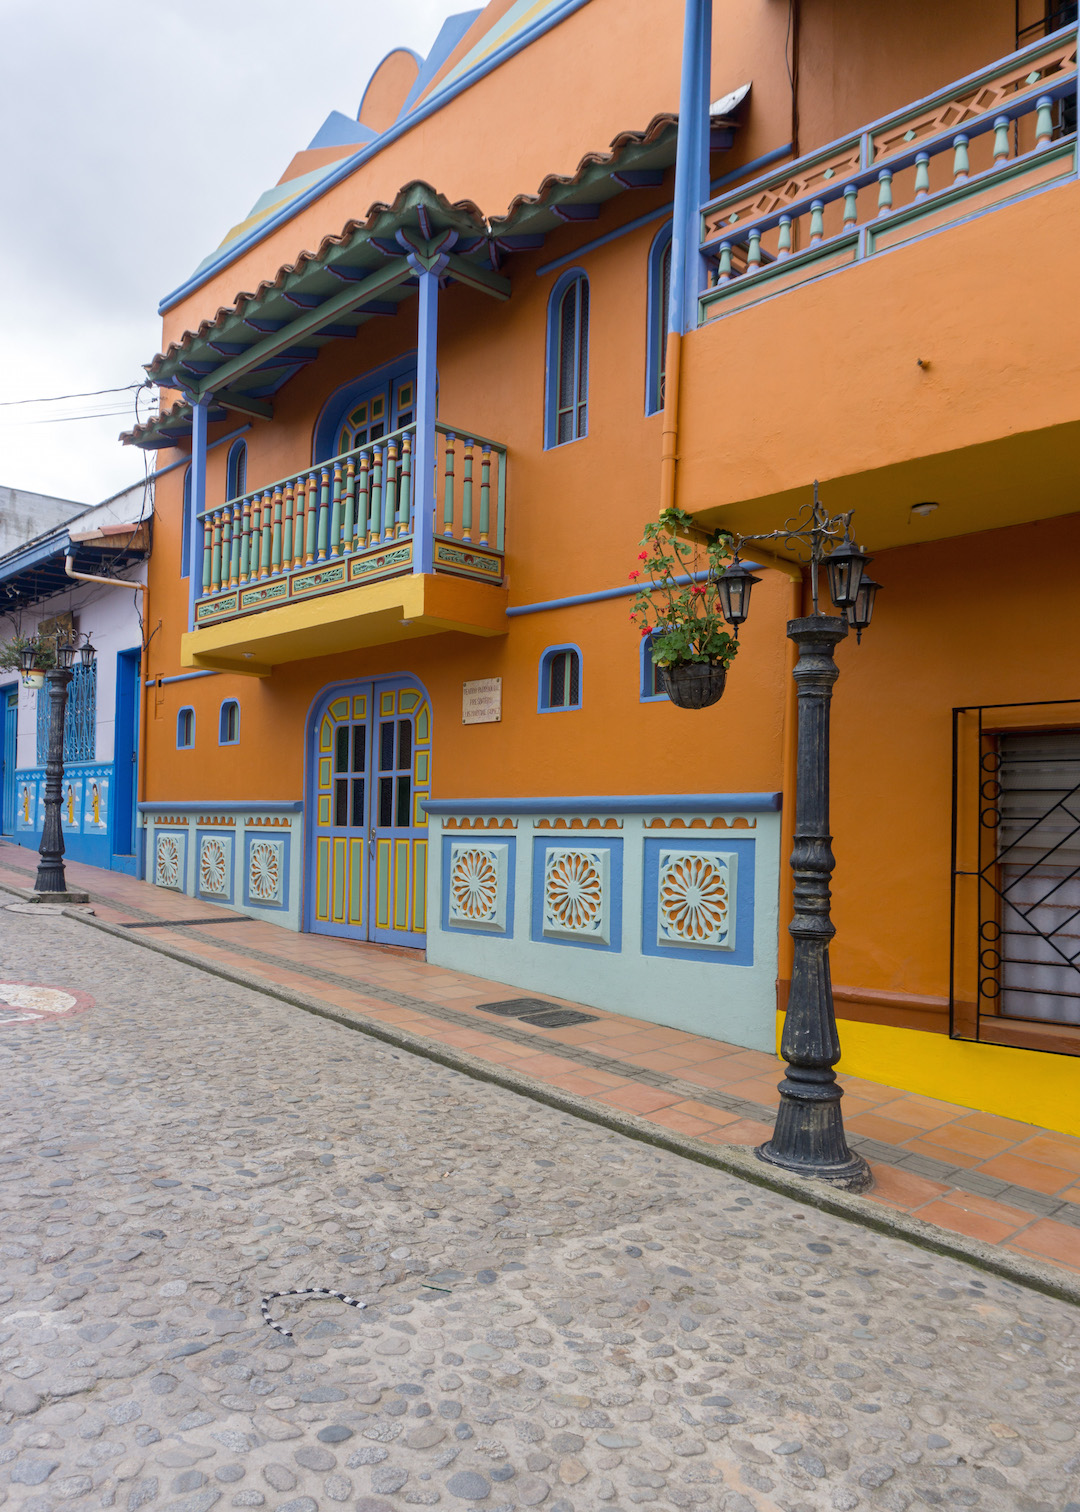 Her_Travel_Edit_Guatape_Colorful_House